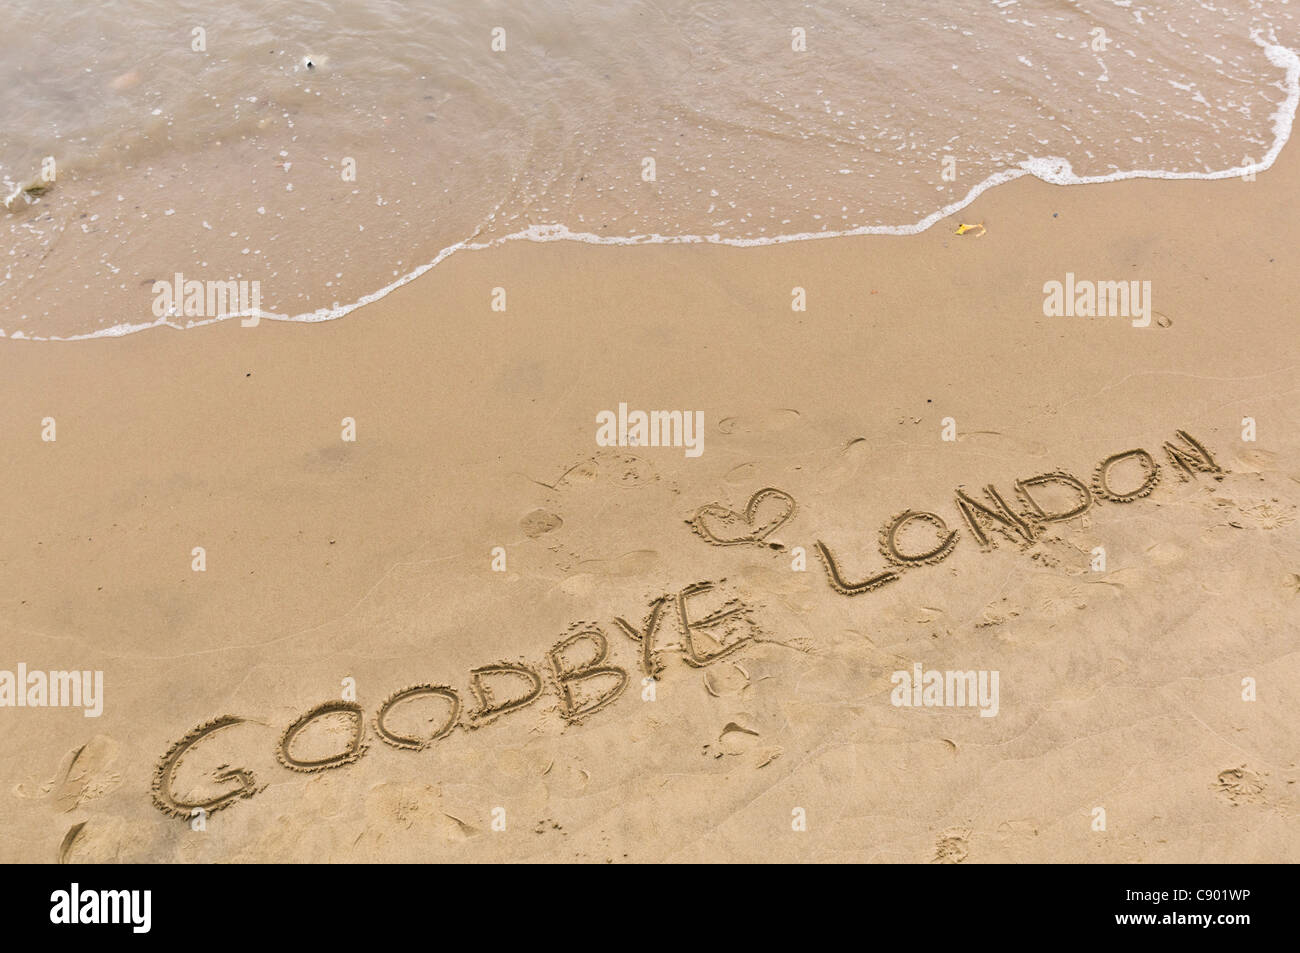 Thames, London, South Bank at Blackfriars - Goodbye London written in clean, unpolluted riverside sand - Stock Image